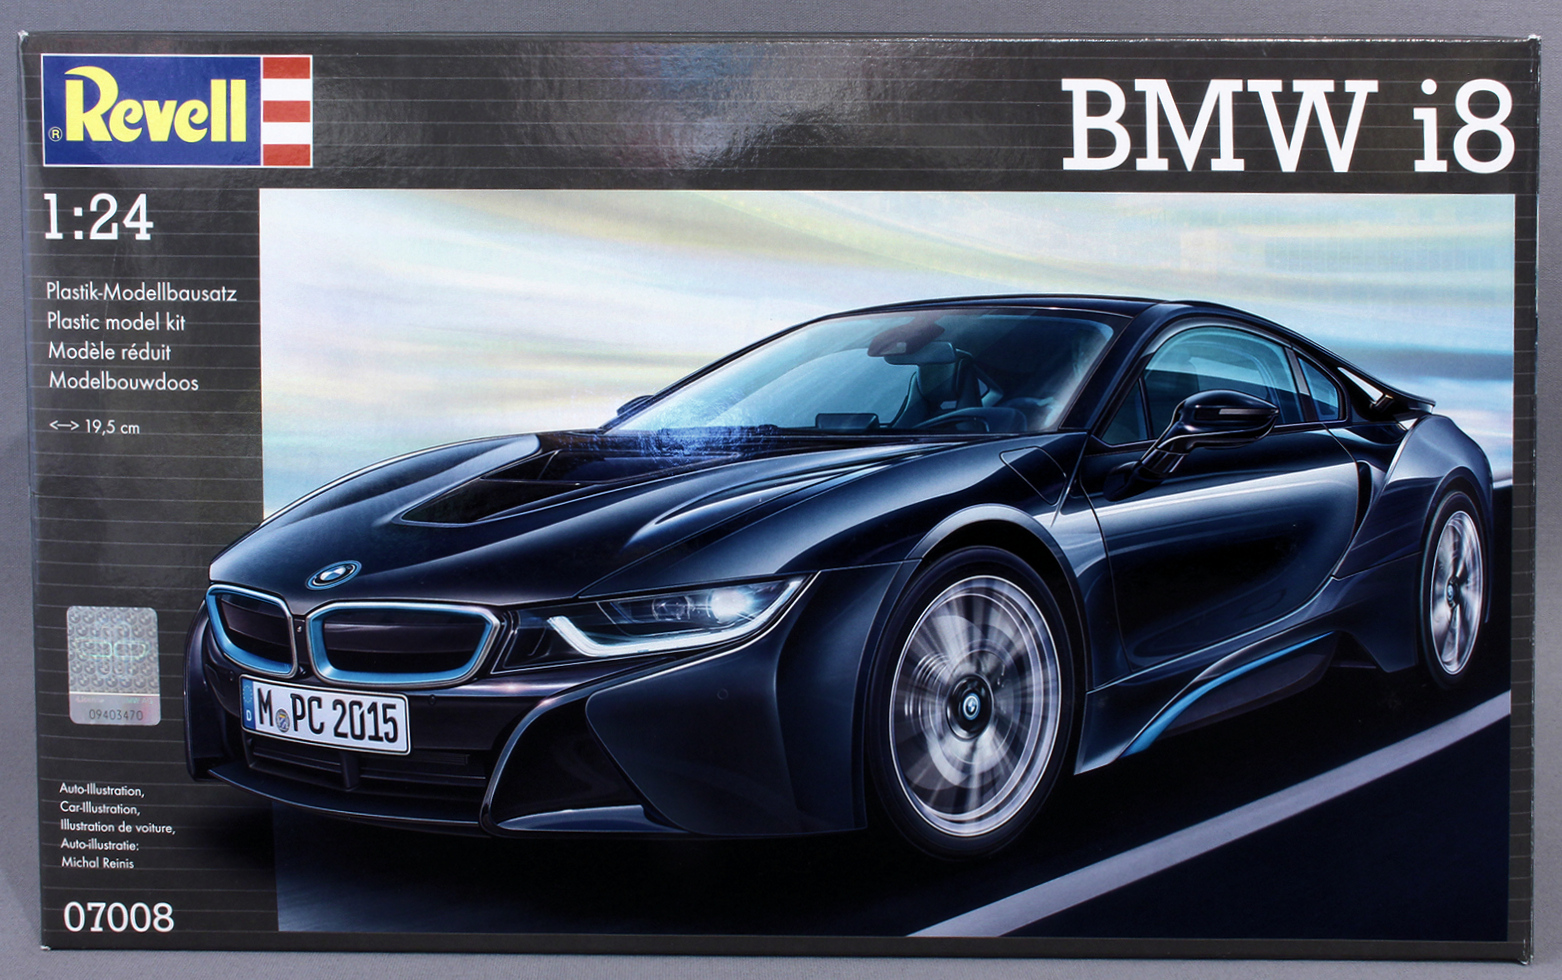 This Is What Happened With What Might Be The Sports Car Of The Future: The  BMW I8.